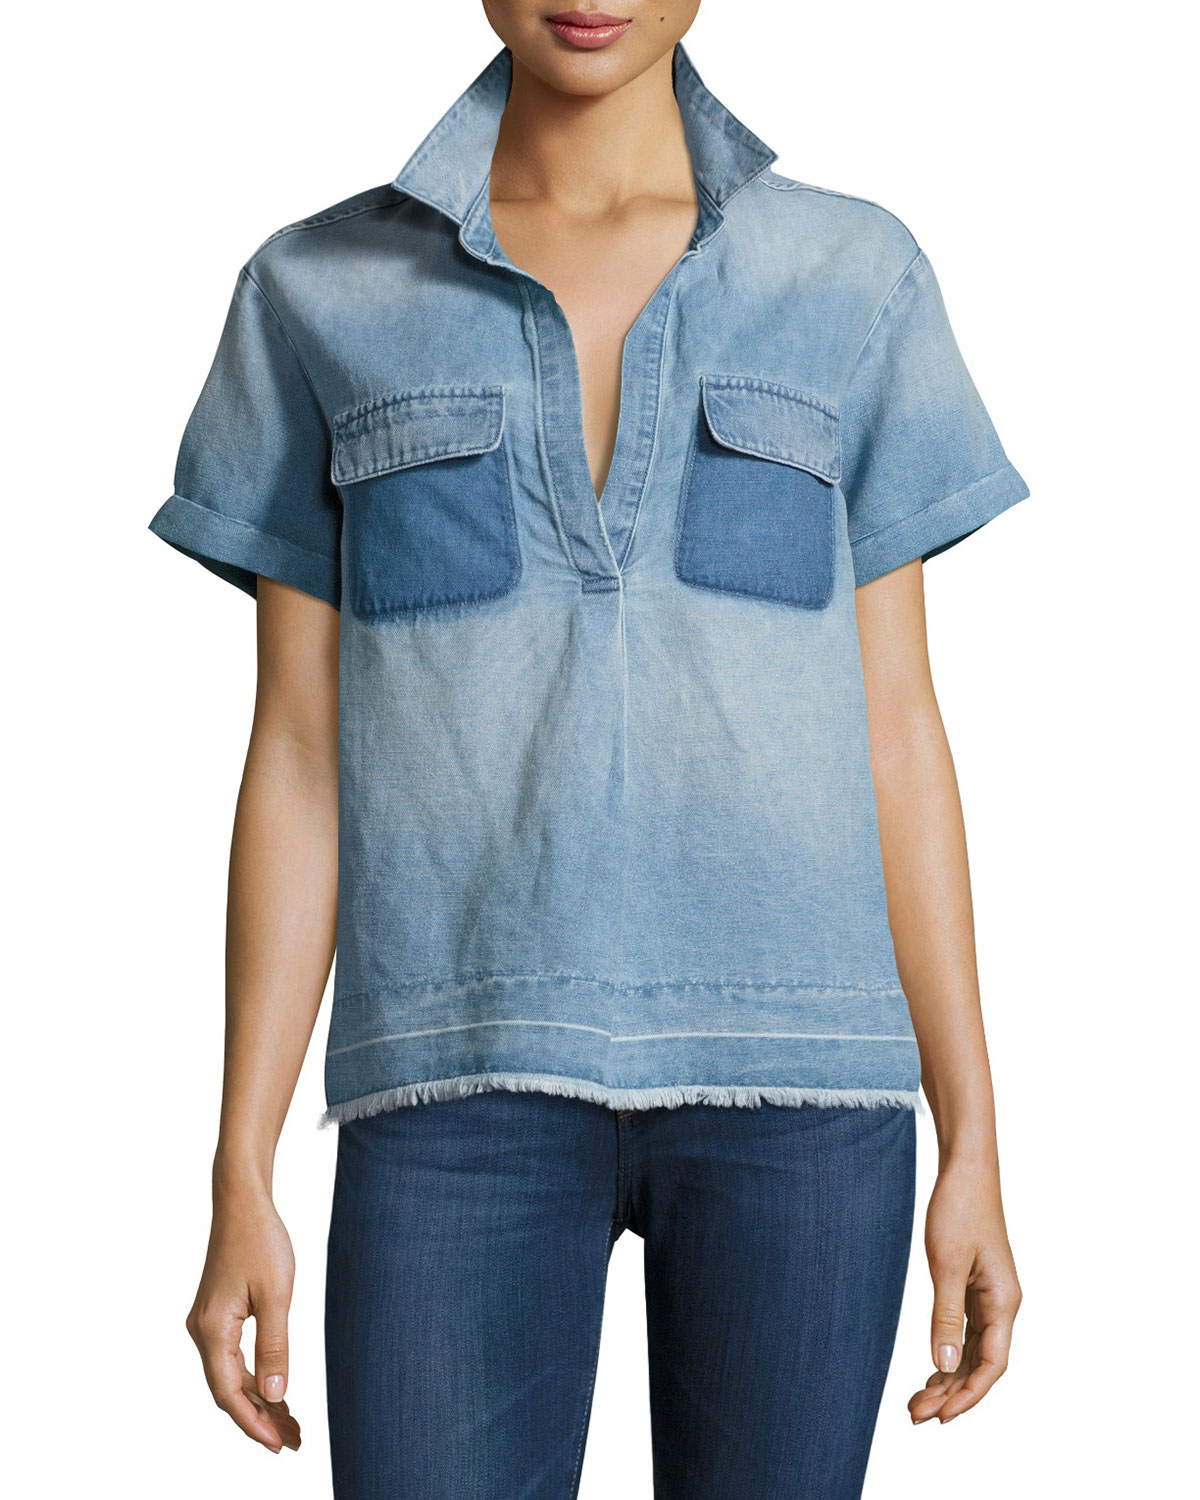 Peter Collared Patched Denim Top